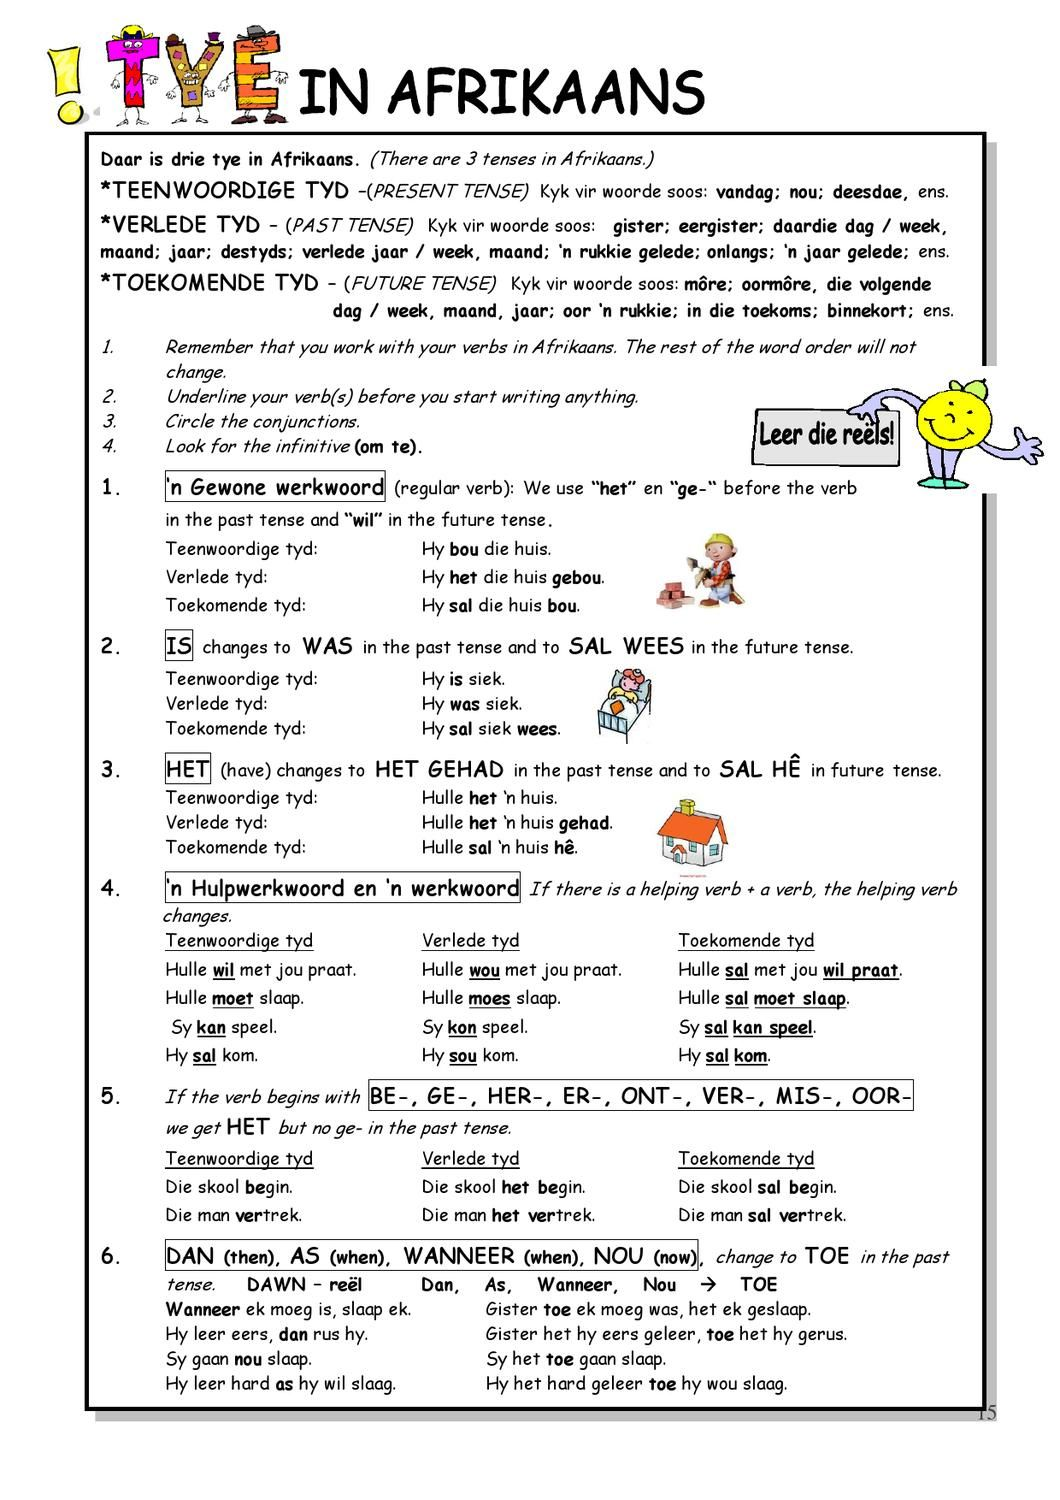 medium resolution of Afrikaans Language Worksheets   Printable Worksheets and Activities for  Teachers